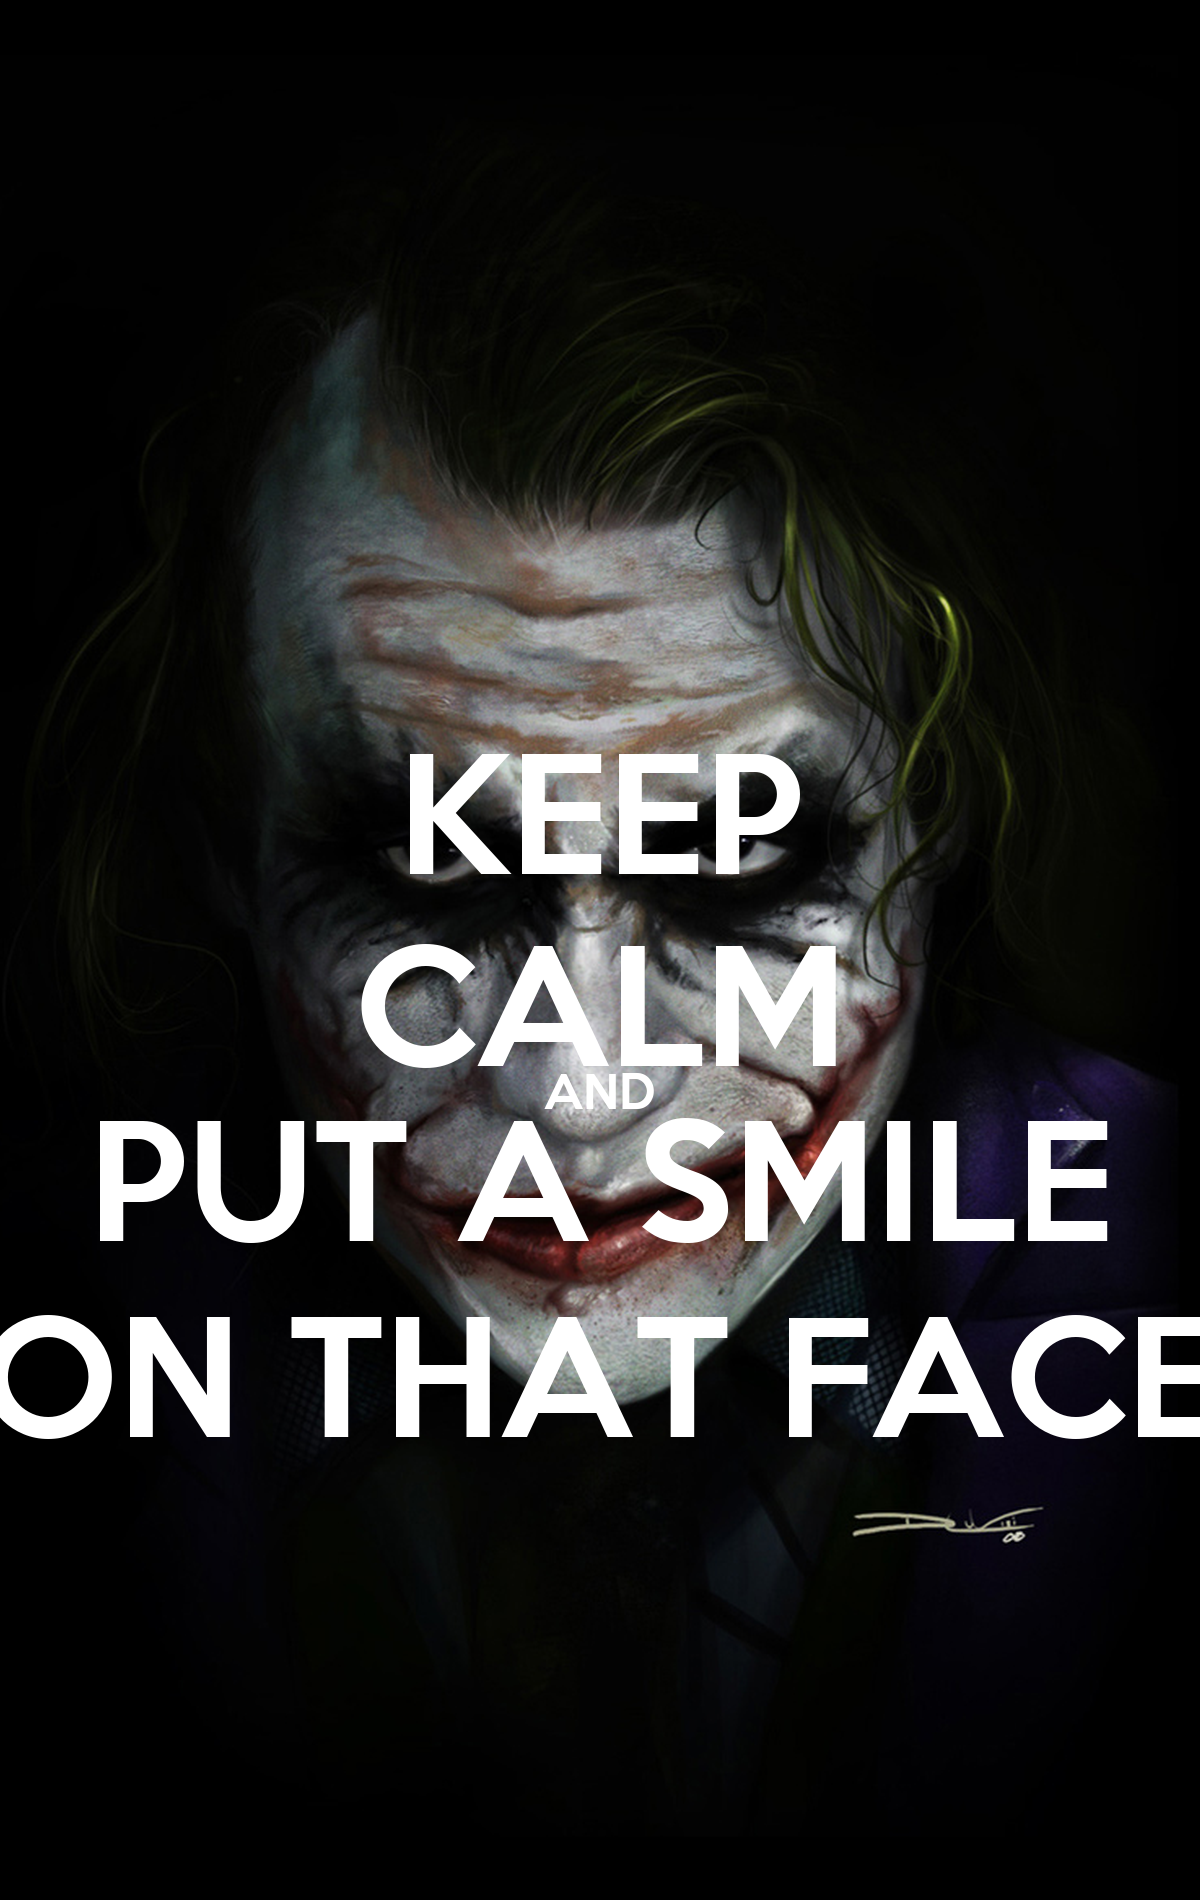 KEEP CALM AND PUT A SMILE ON THAT FACE Poster | JHONNY